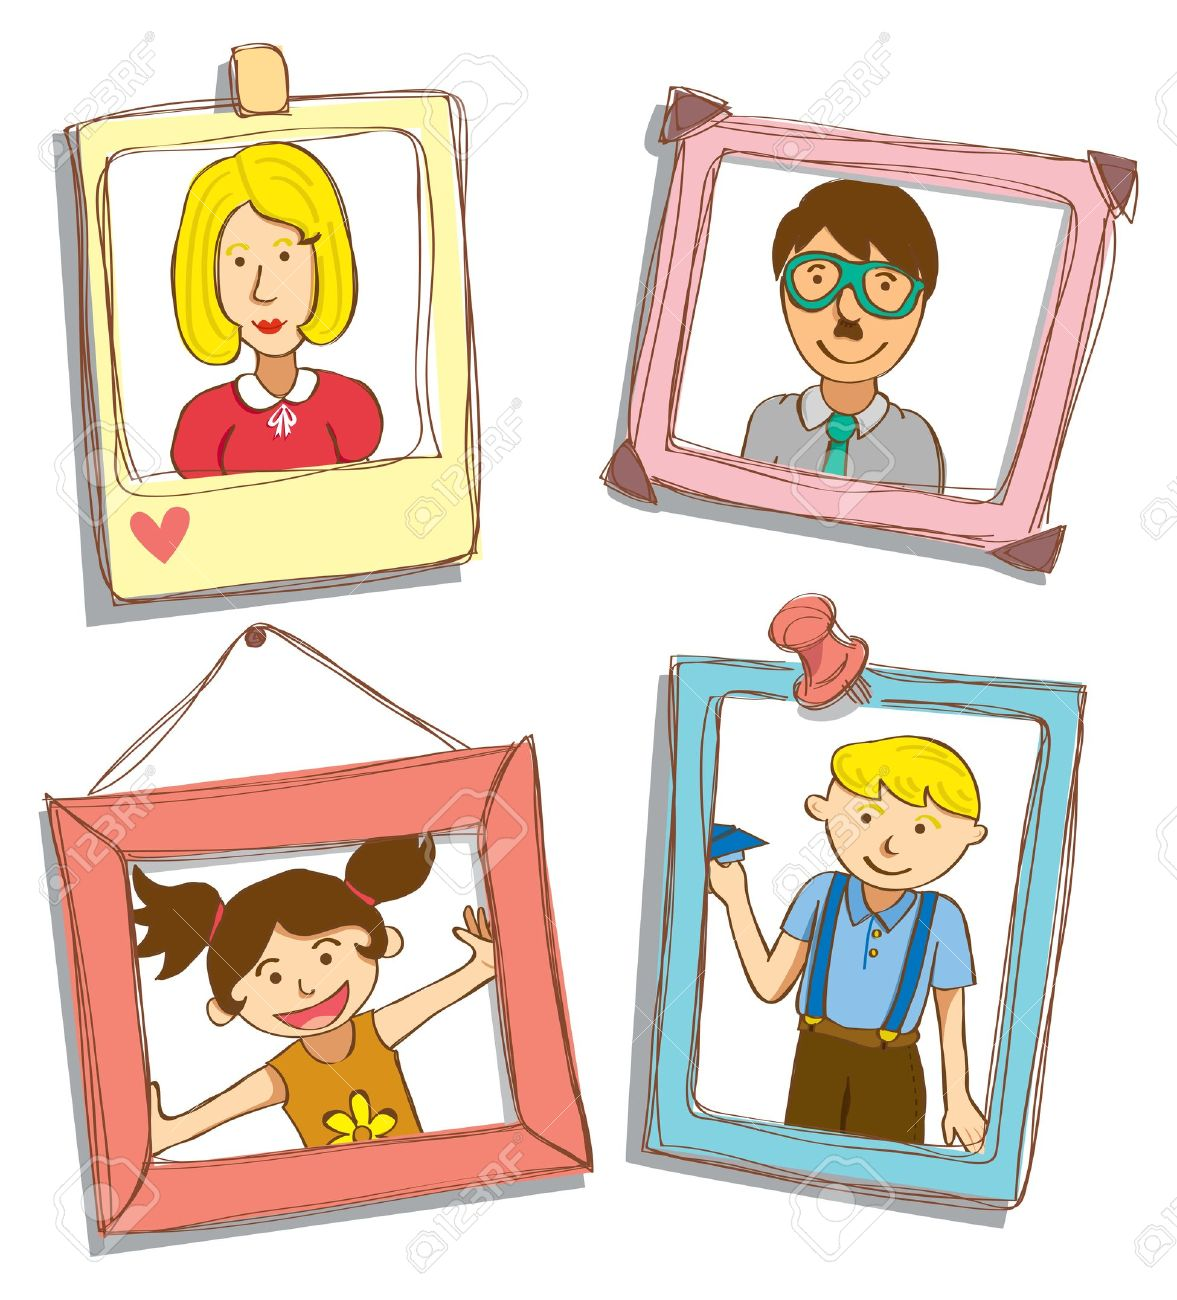 Family photograph clipart.